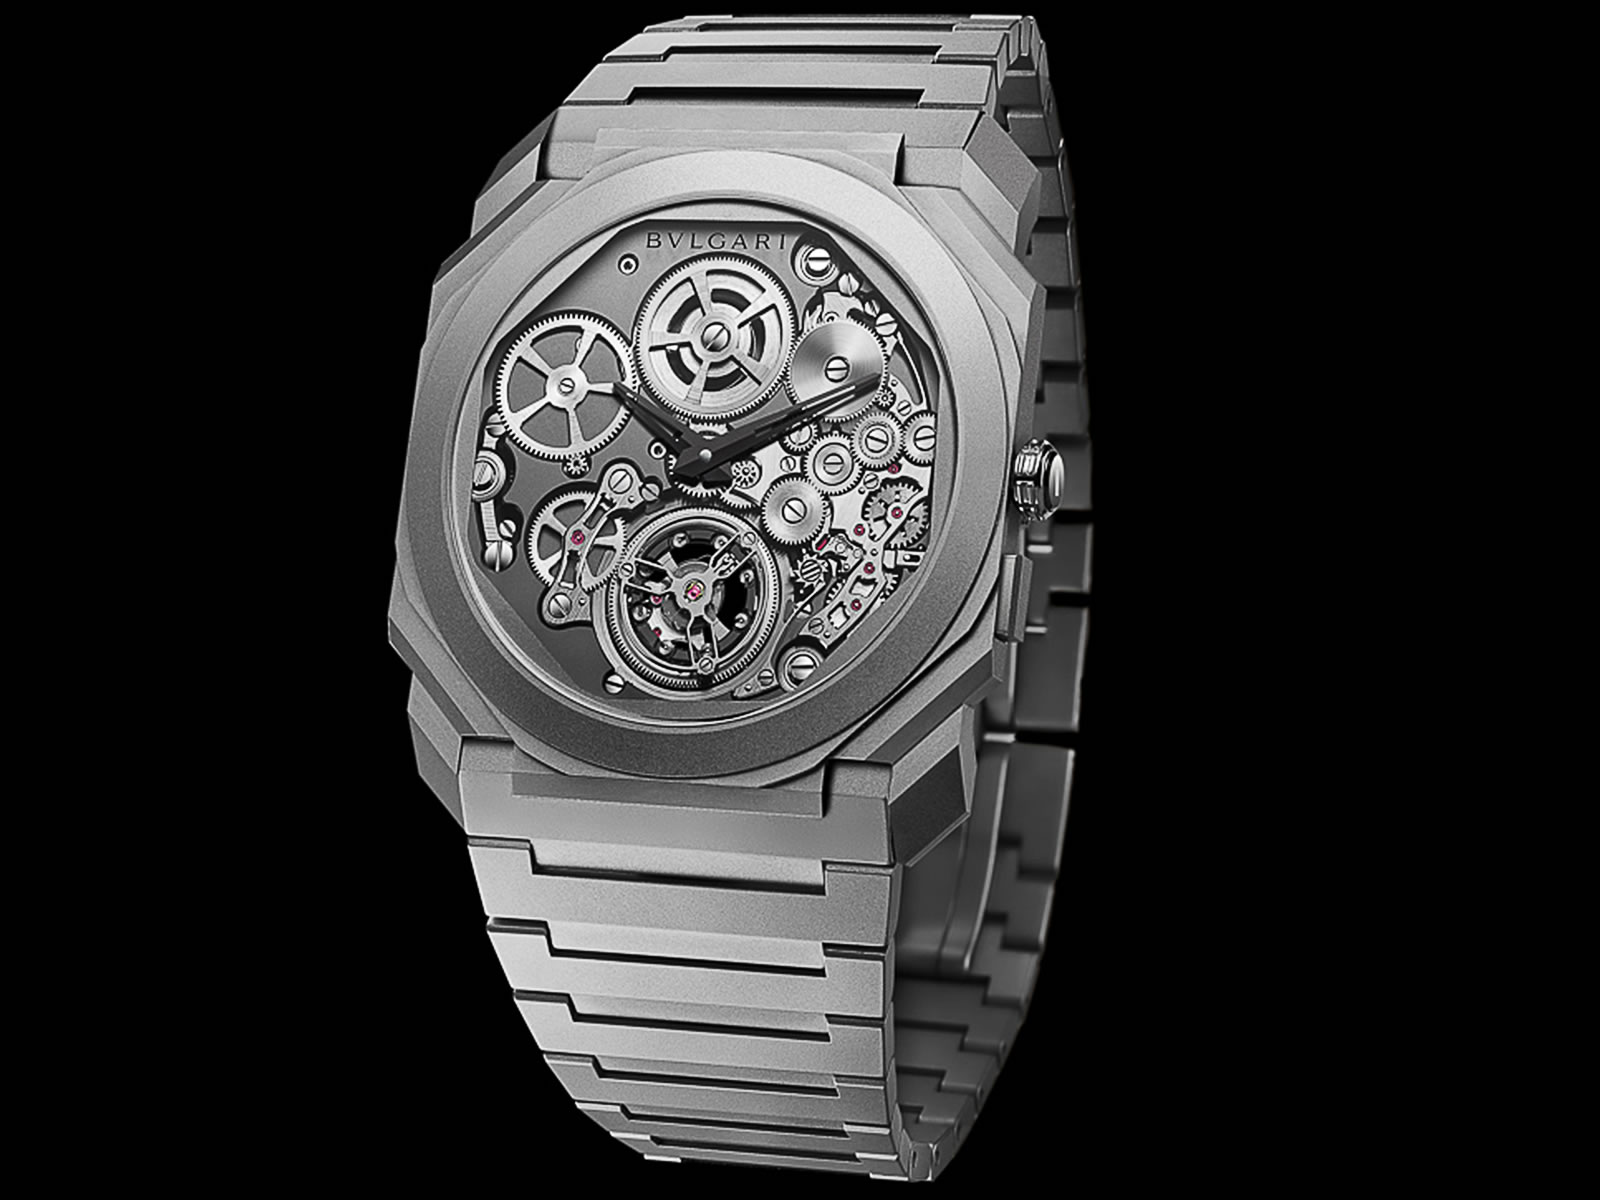 bulgari-octo-finissimo-thinnest-automatic-watch-2018-6-.jpg